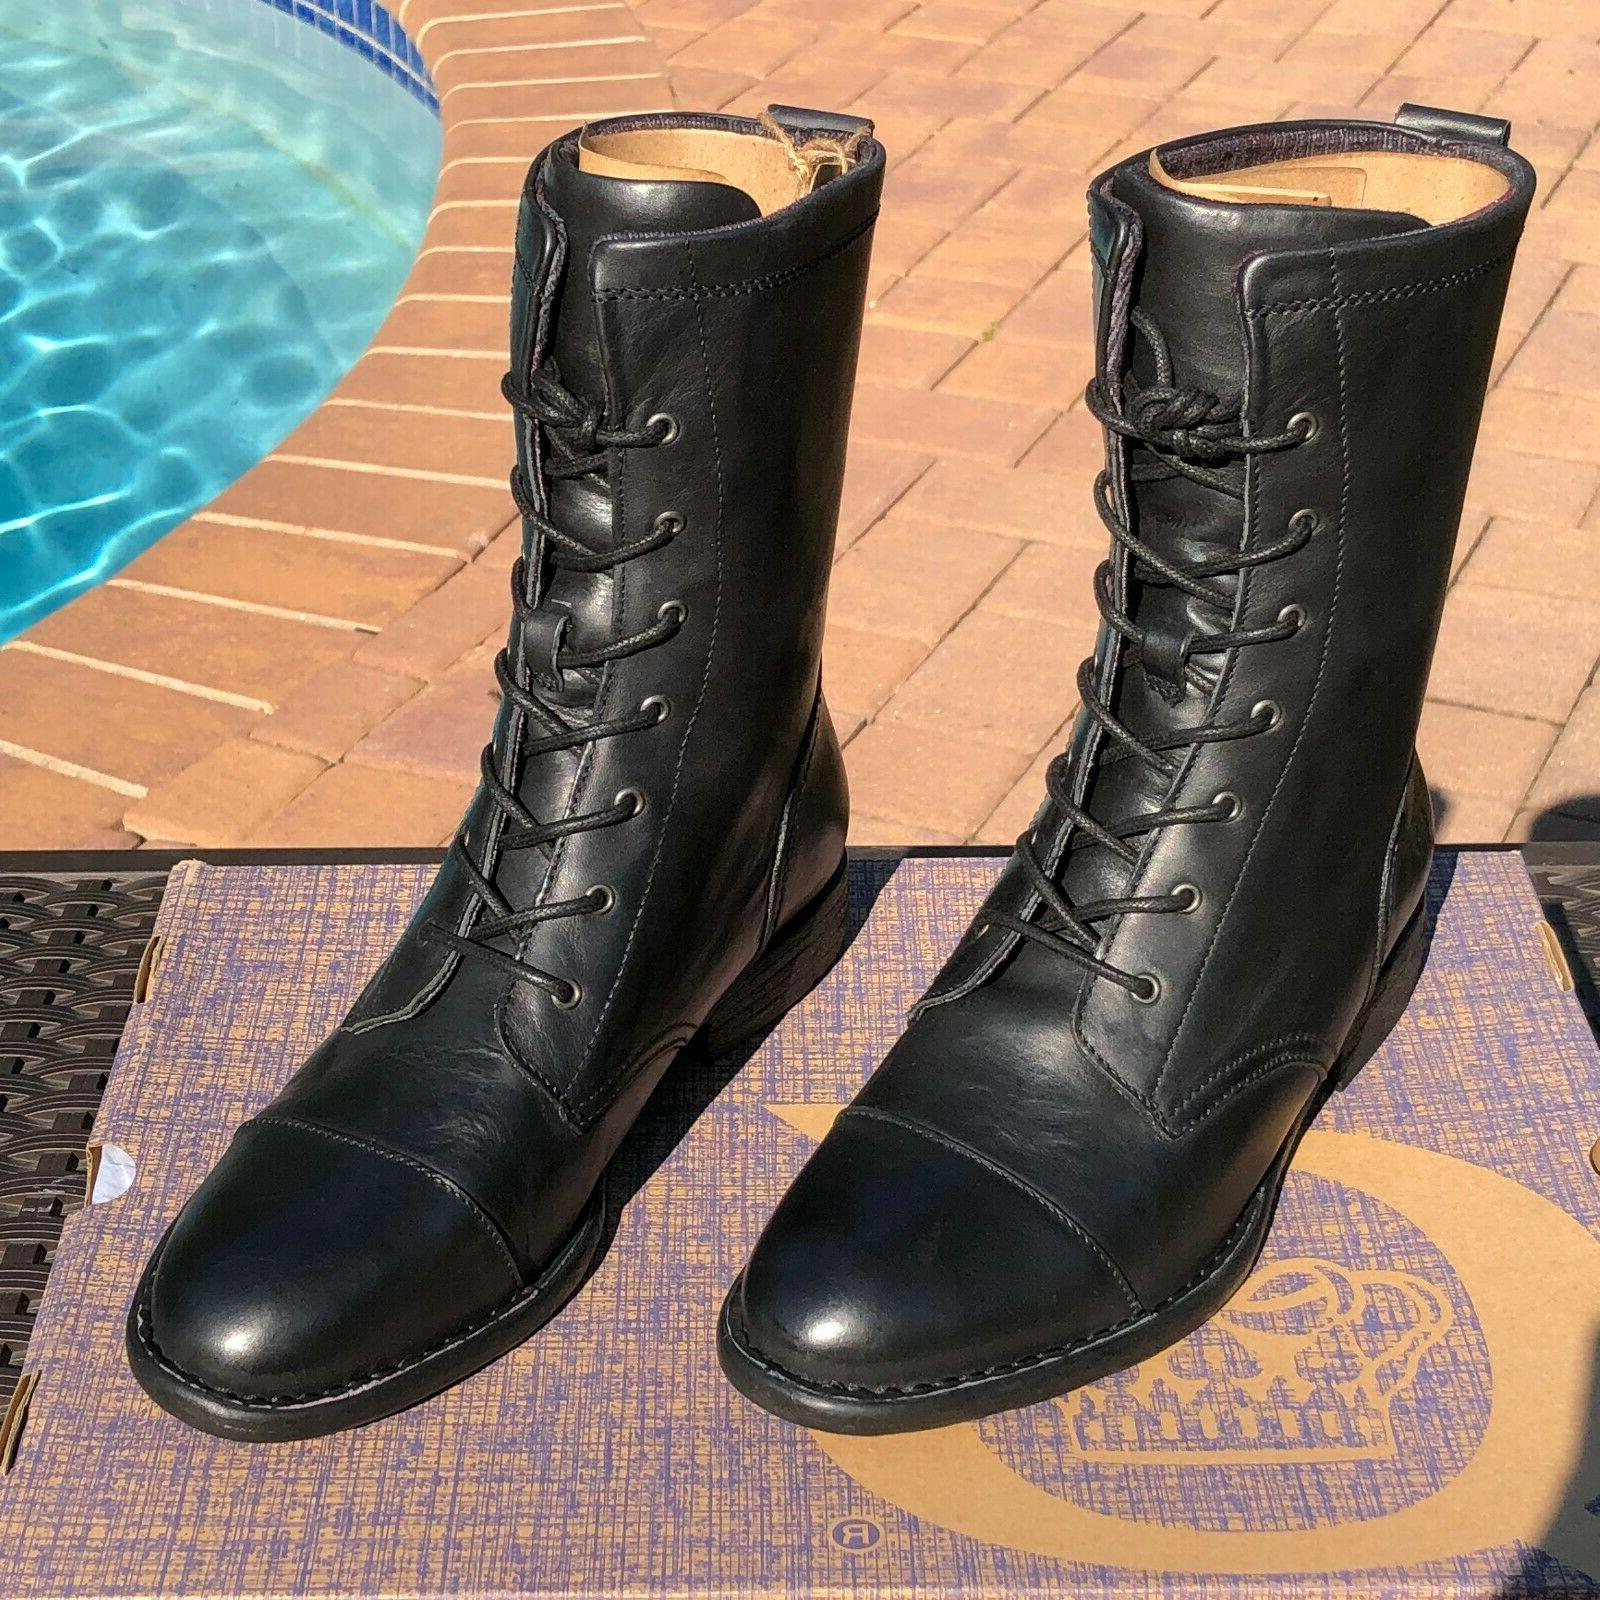 Born Neon 8.5, & Leather Toe Combat Boots $150